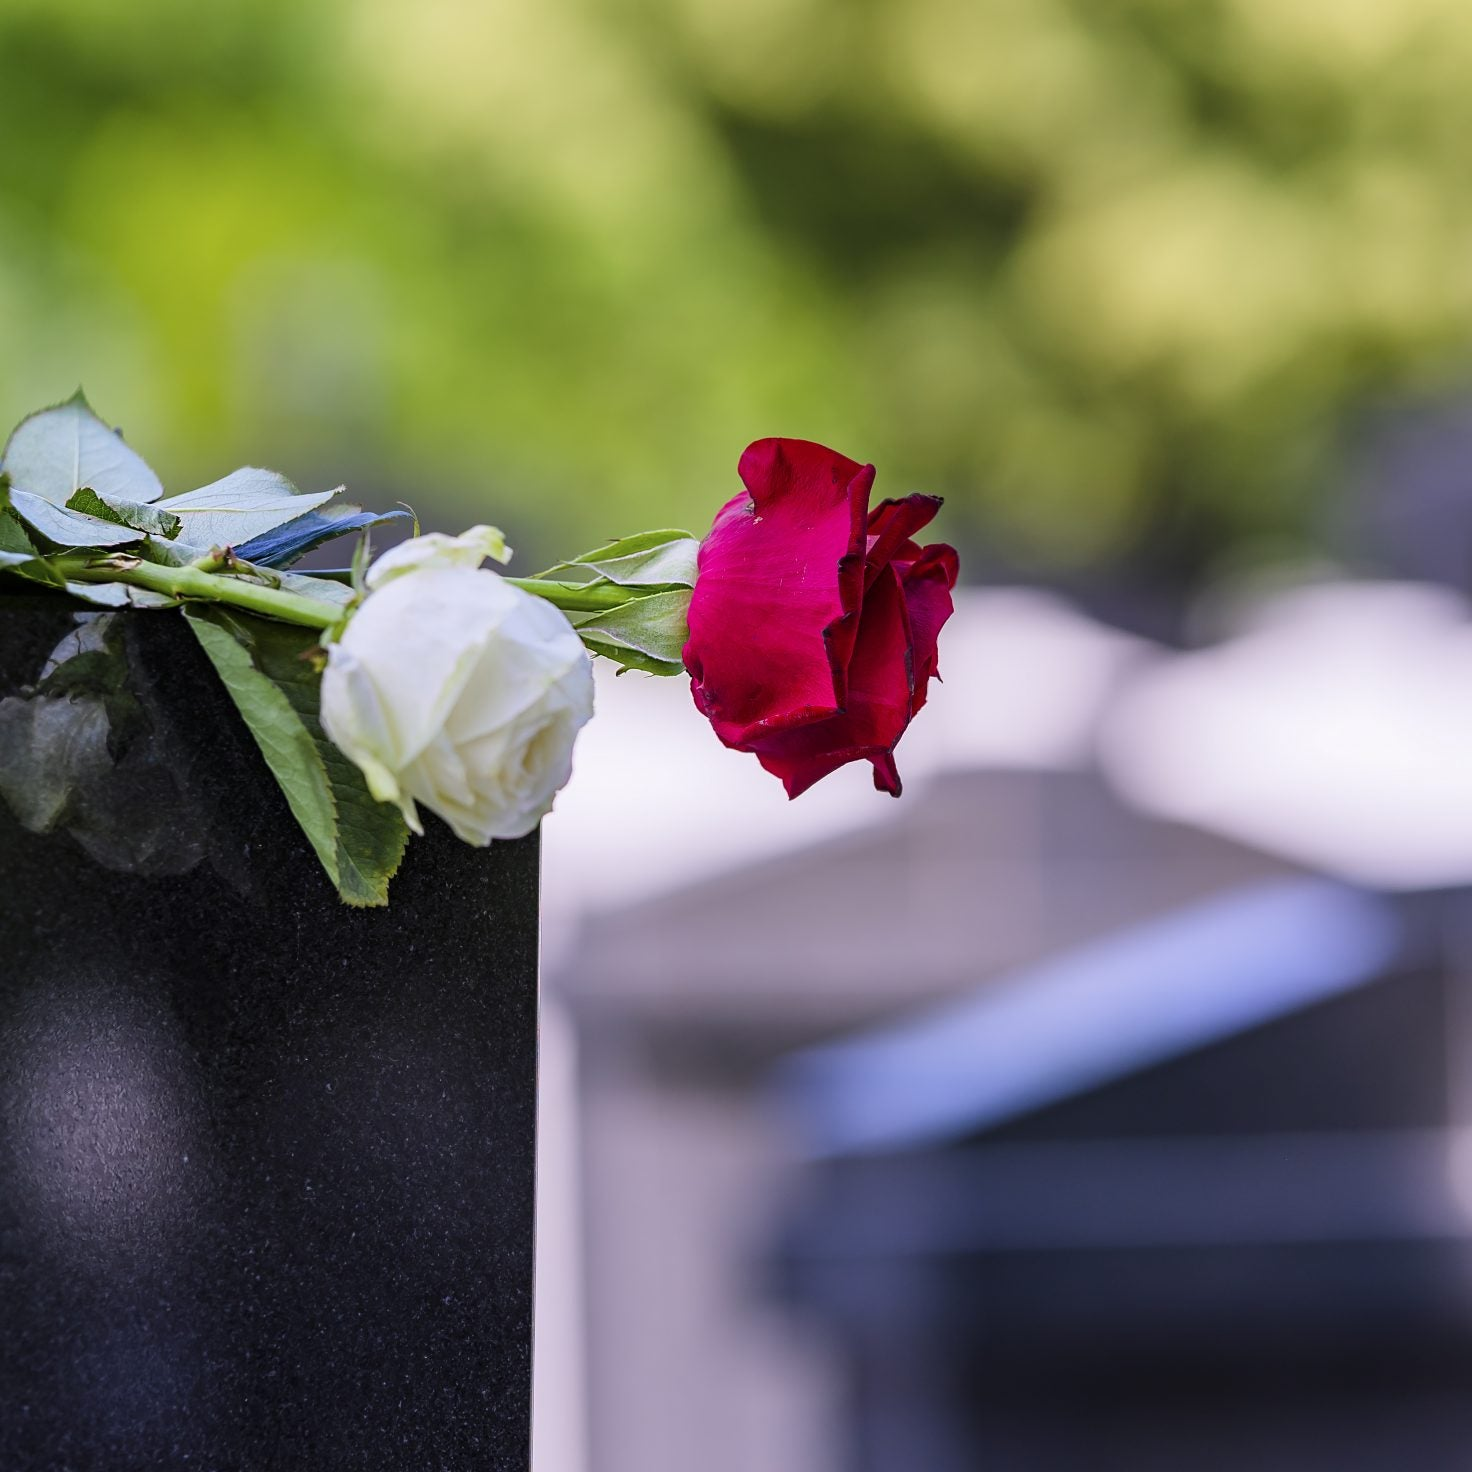 Six Dead Of Coronavirus After Attending Funeral In South Carolina